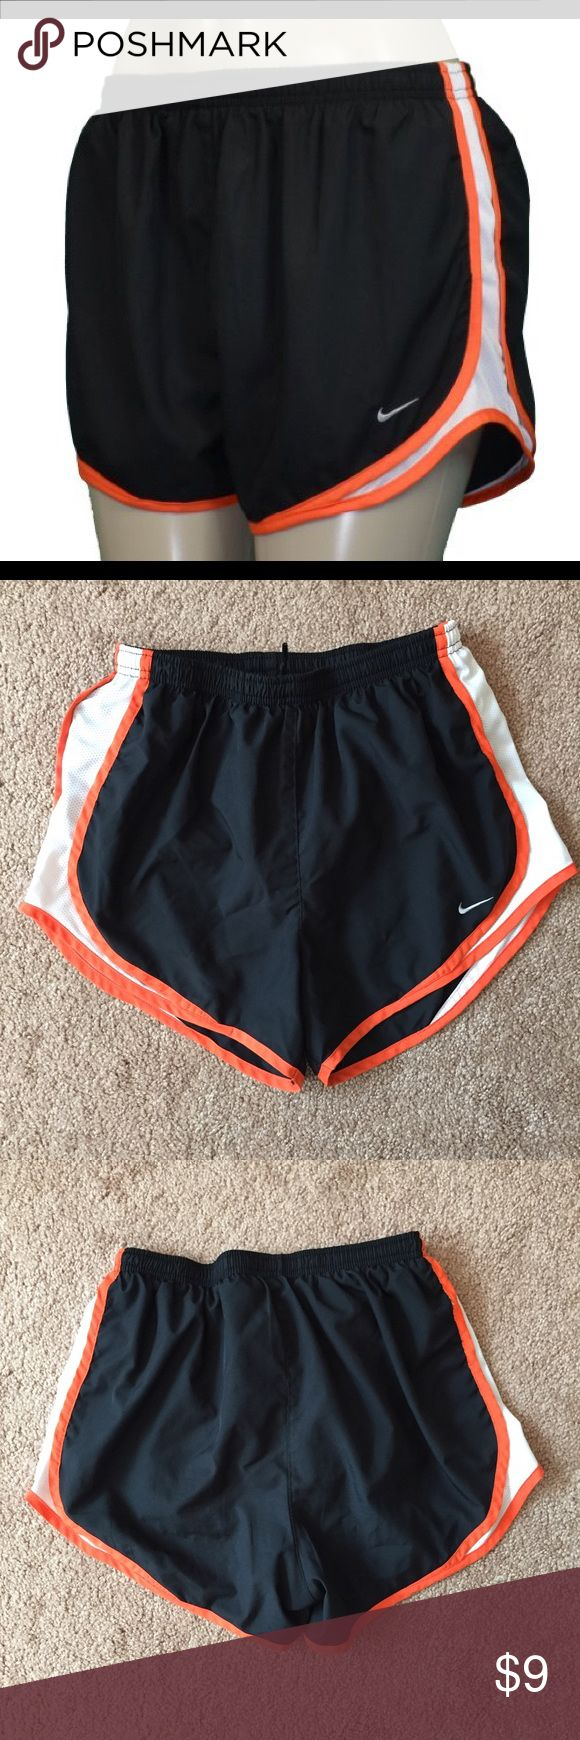 Women's Nike Dri Fit Shorts Black with orange trim Nike Dri Fit shorts. Washed and worn a few times but in great condition! Size small. Bundle 2 or more items and save 15% plus combined shipping! Nike Shorts